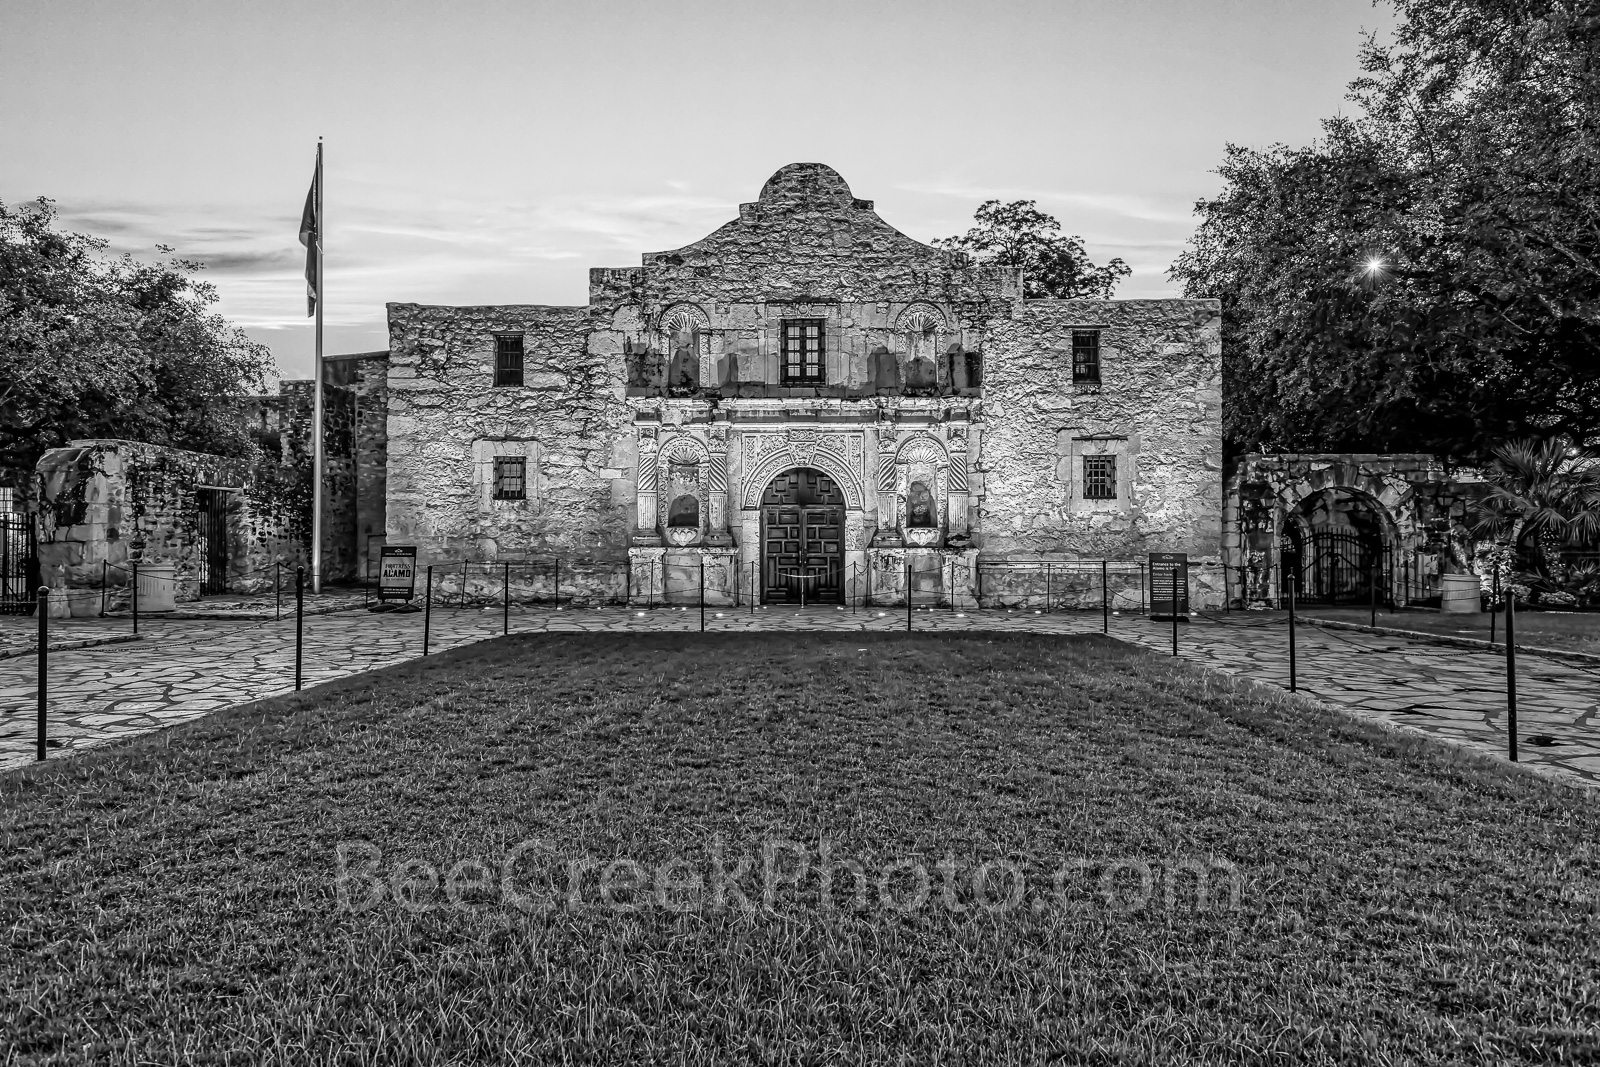 Texas Alamo in BW, black and white, BW, San Antonio, Alamo, San Antonio Missions National Historical Park., world heritage site, history, 1936, landmark, downtown, city, missions, Santa Anna,  mexico,, photo